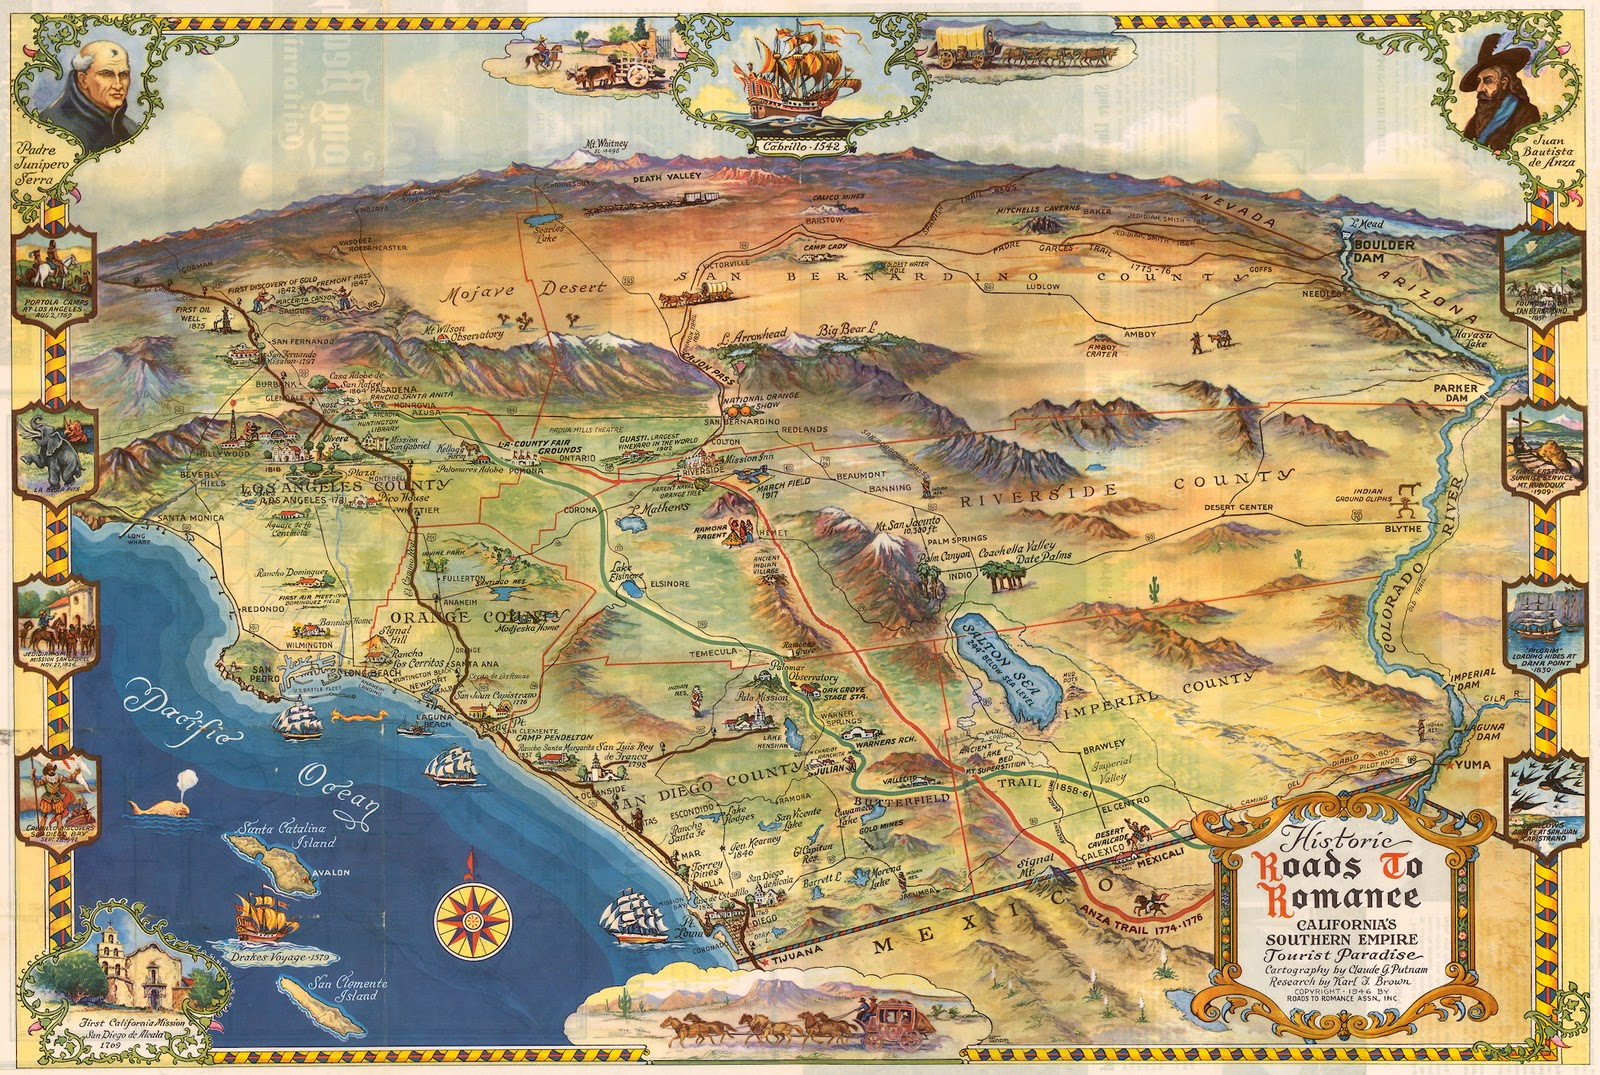 OC History Roundup November 2011 – Arizona Travel Map